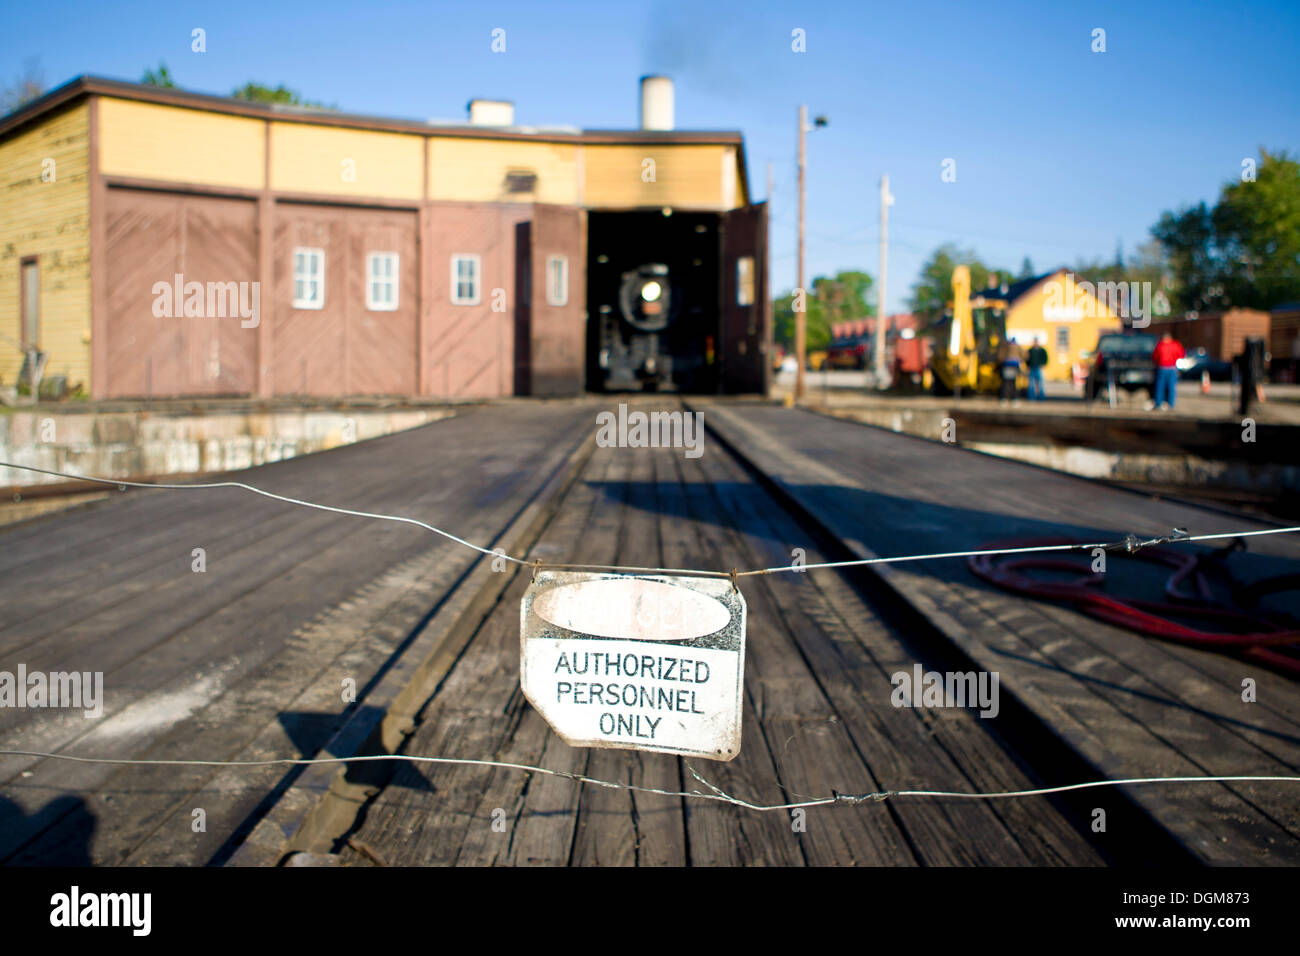 Rail track, sign 'Authorized personnel only', Conway Scenic Railroad, Conway, New Hampshire, USA - Stock Image